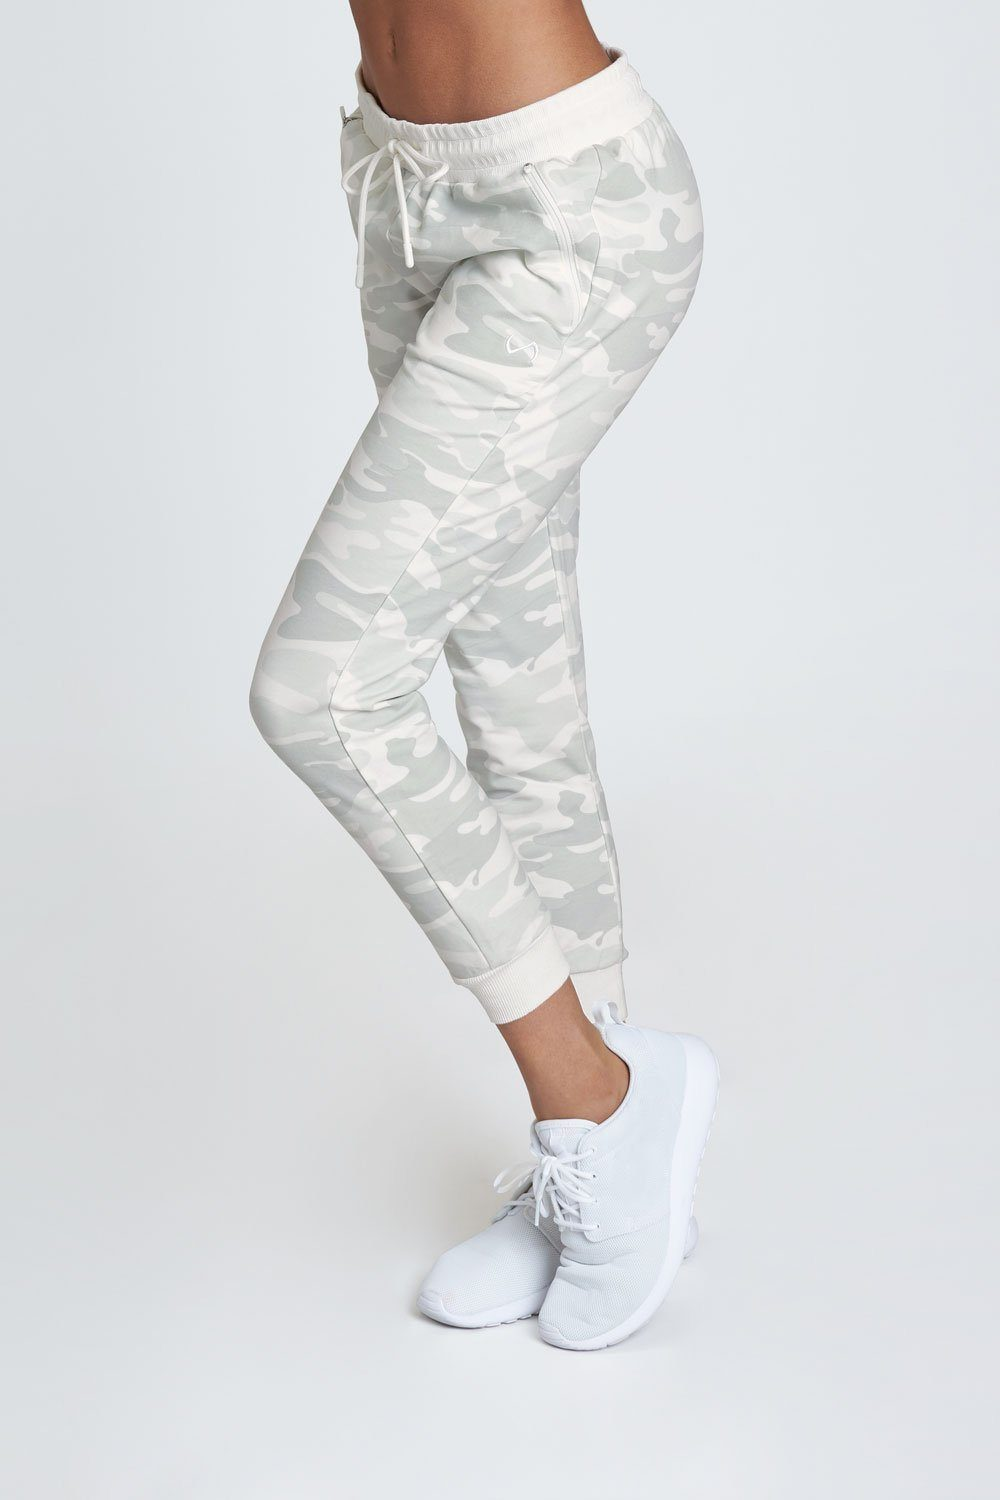 TLF Orbit Joggers - Jogger - TLF Apparel | Take Life Further